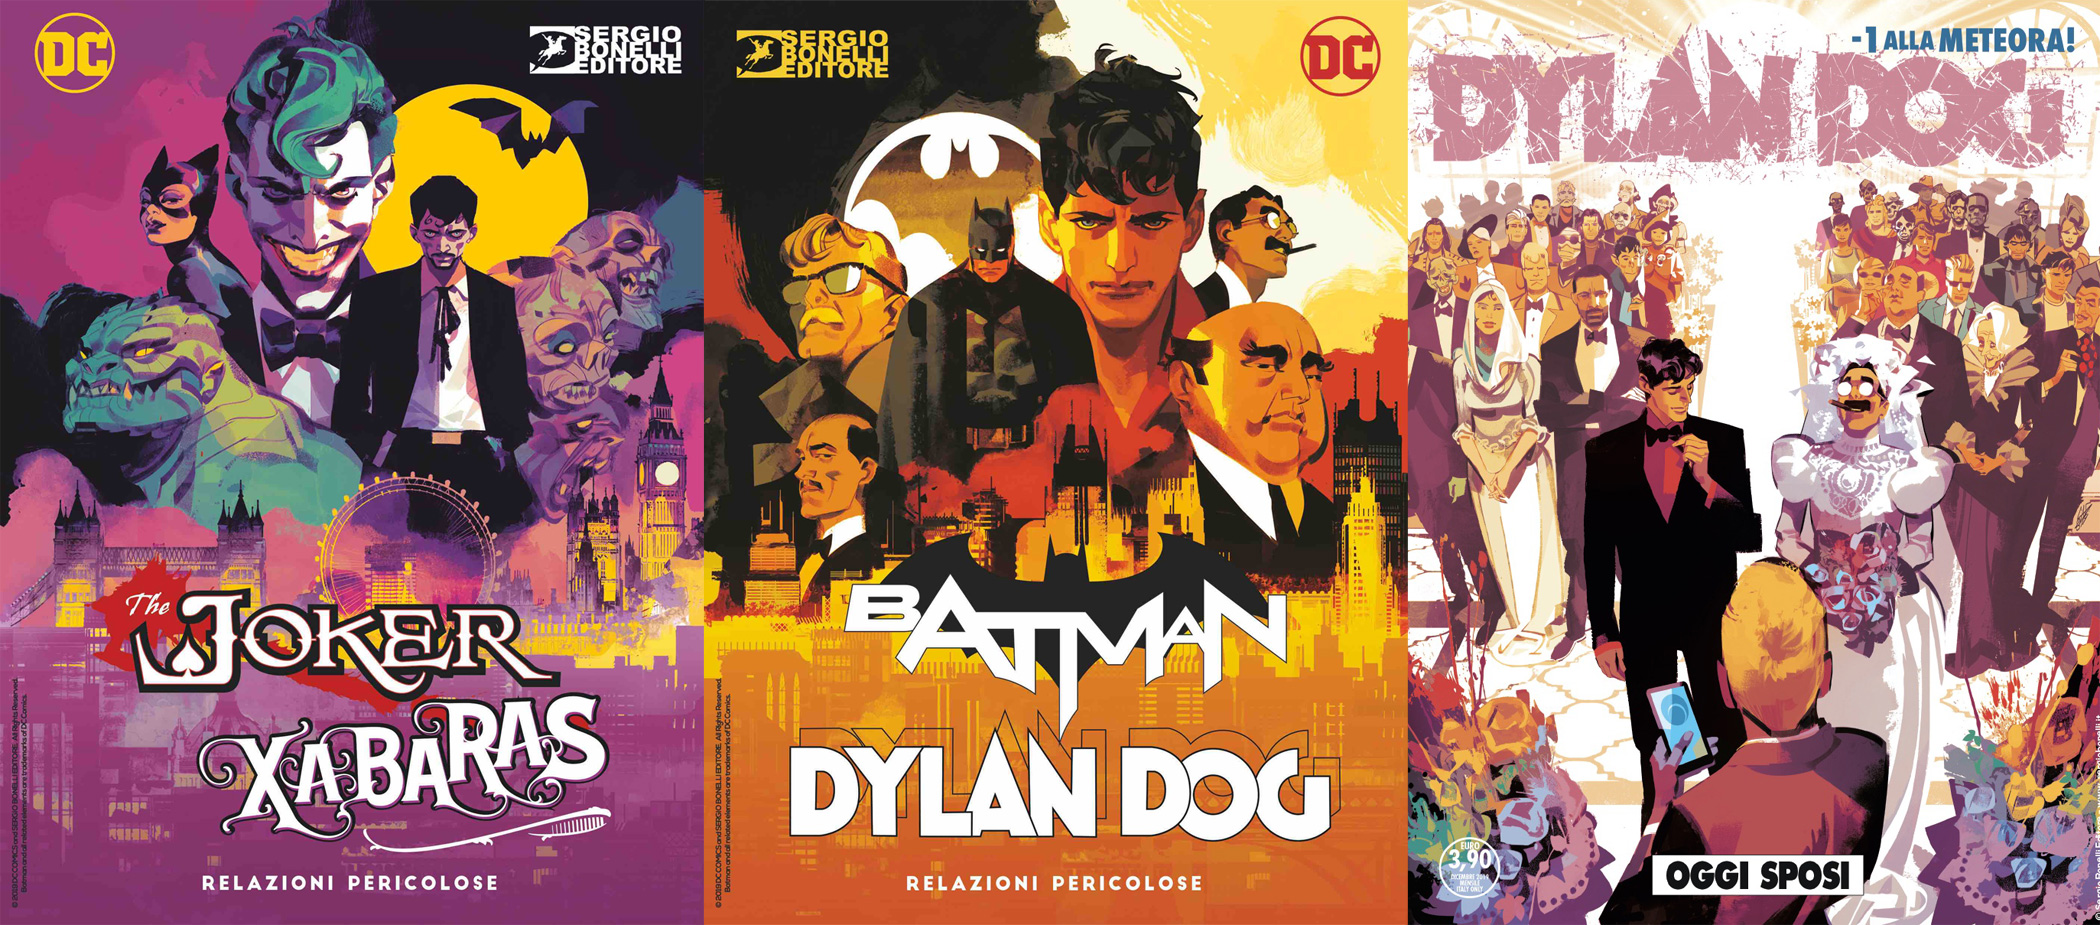 Dylan Dog a Lucca Comics and Games 2019